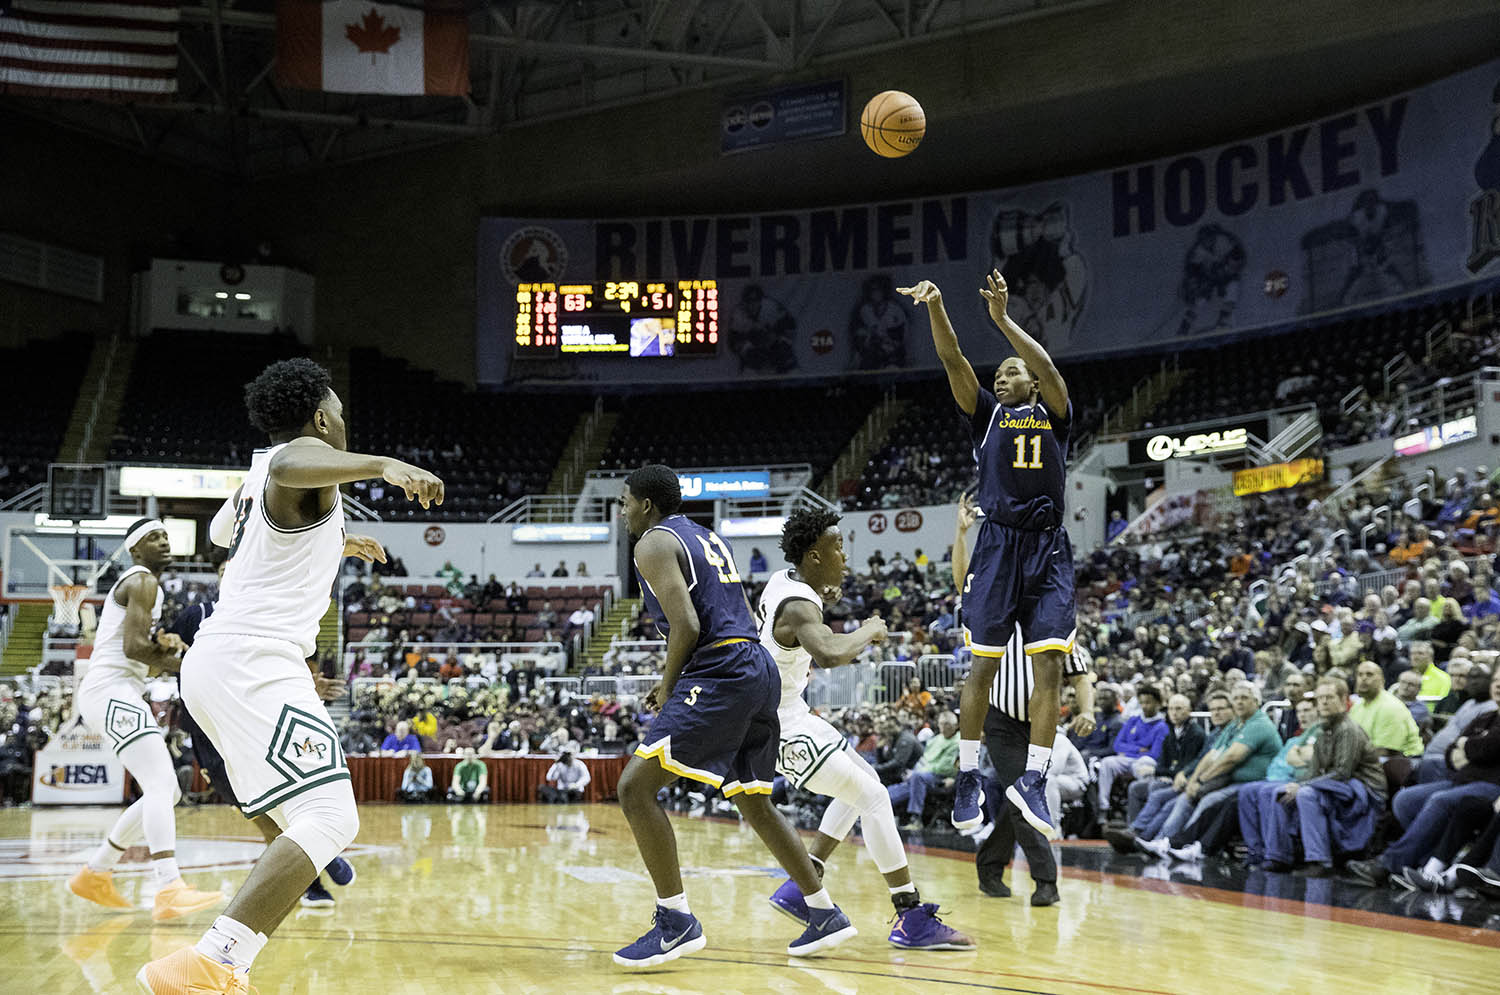 Southeast's Kobe Medley fires a three against Morgan Park  during the 3A championship game at Carver Arena in Peoria, Ill., Saturday, March 17, 2018. [Ted Schurter/The State Journal-Register]